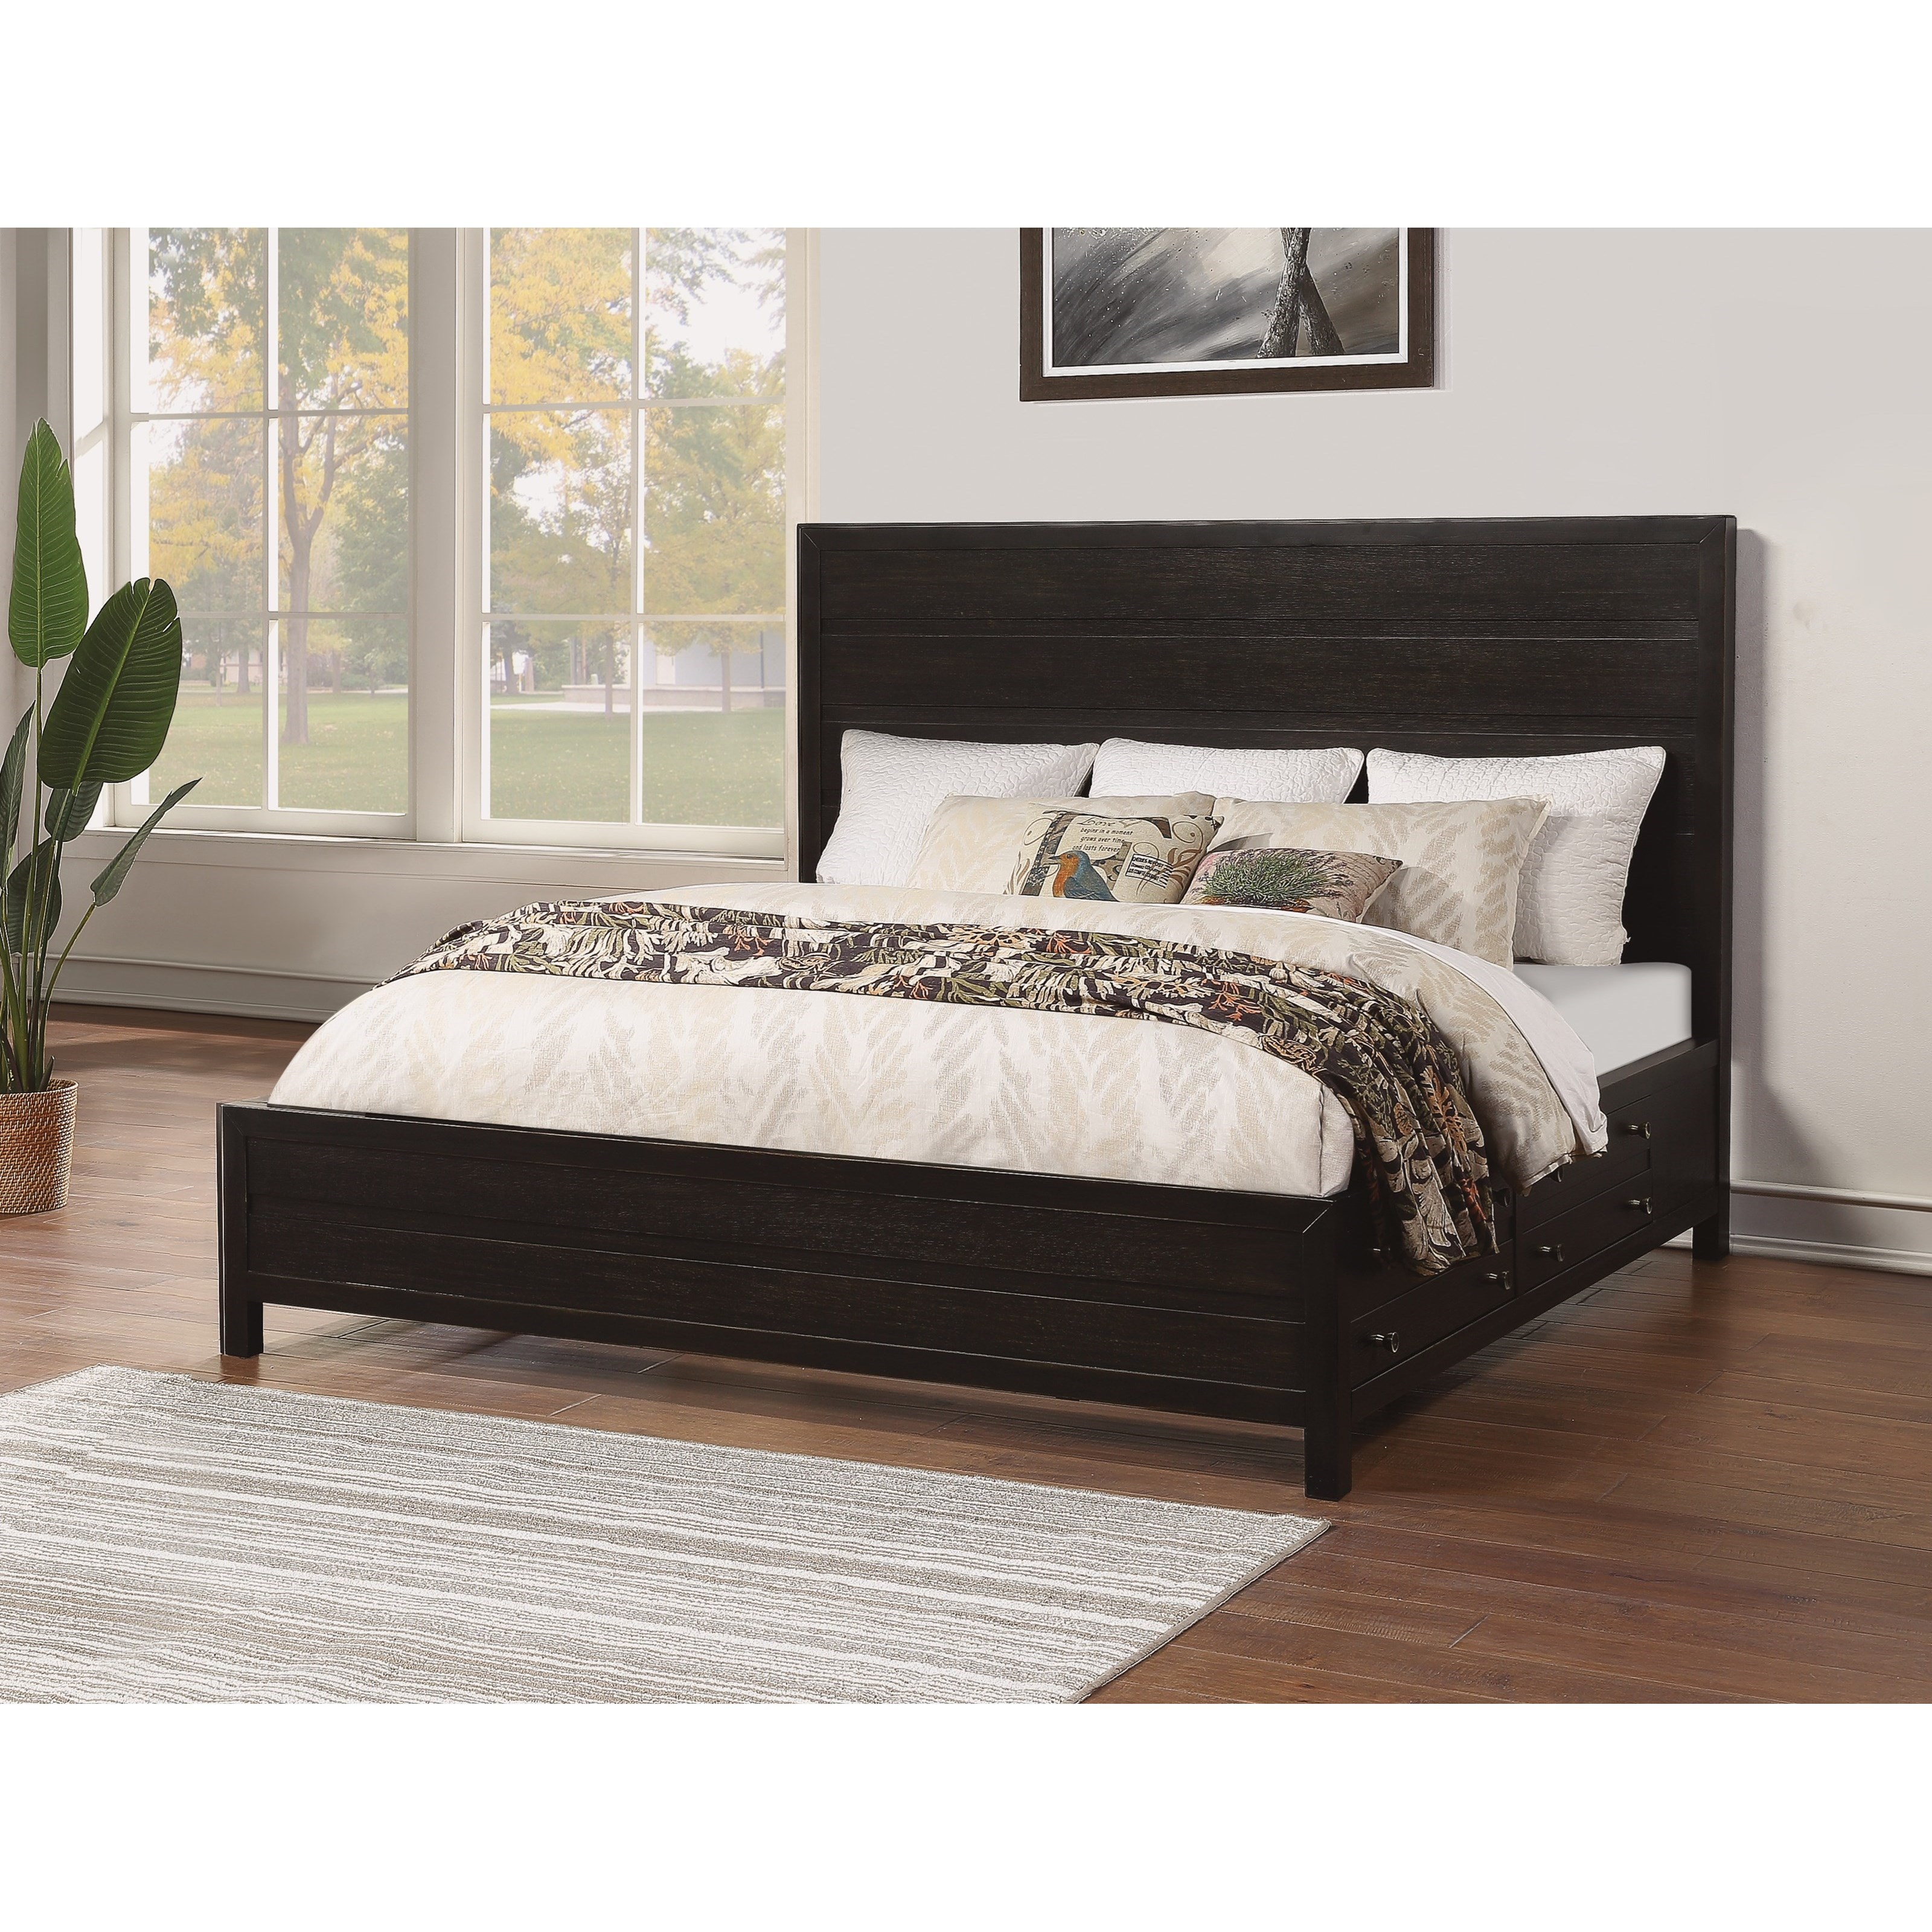 Cologne California King Low Profile Storage Bed by Flexsteel Wynwood Collection at Godby Home Furnishings